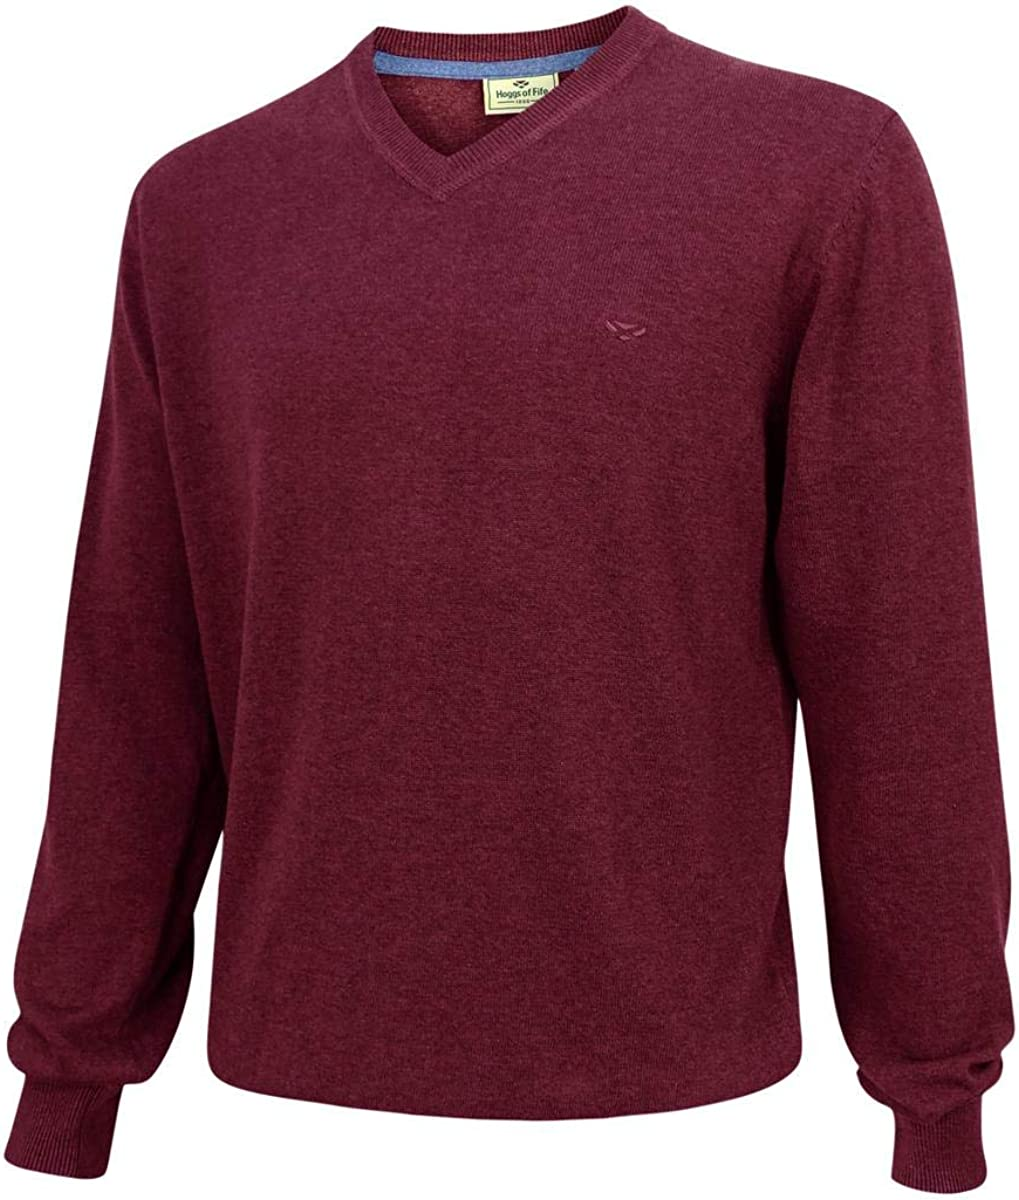 Hoggs of Fife Stirling LS Pullover Burgundy